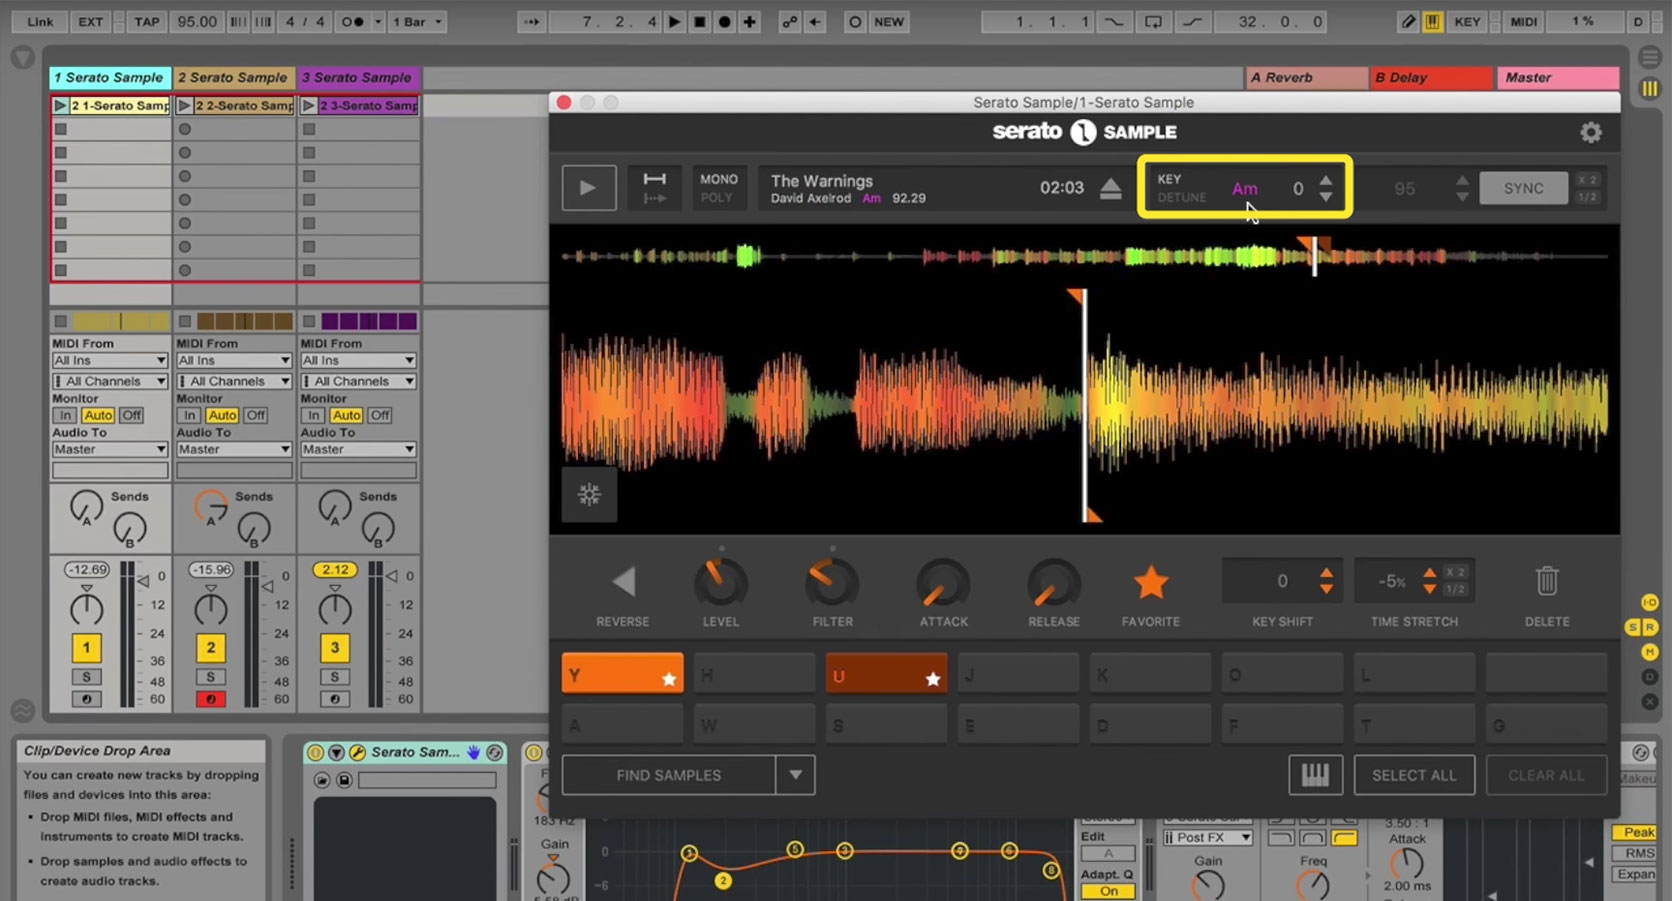 5. How to use Key detection and shifting in Serato Sample